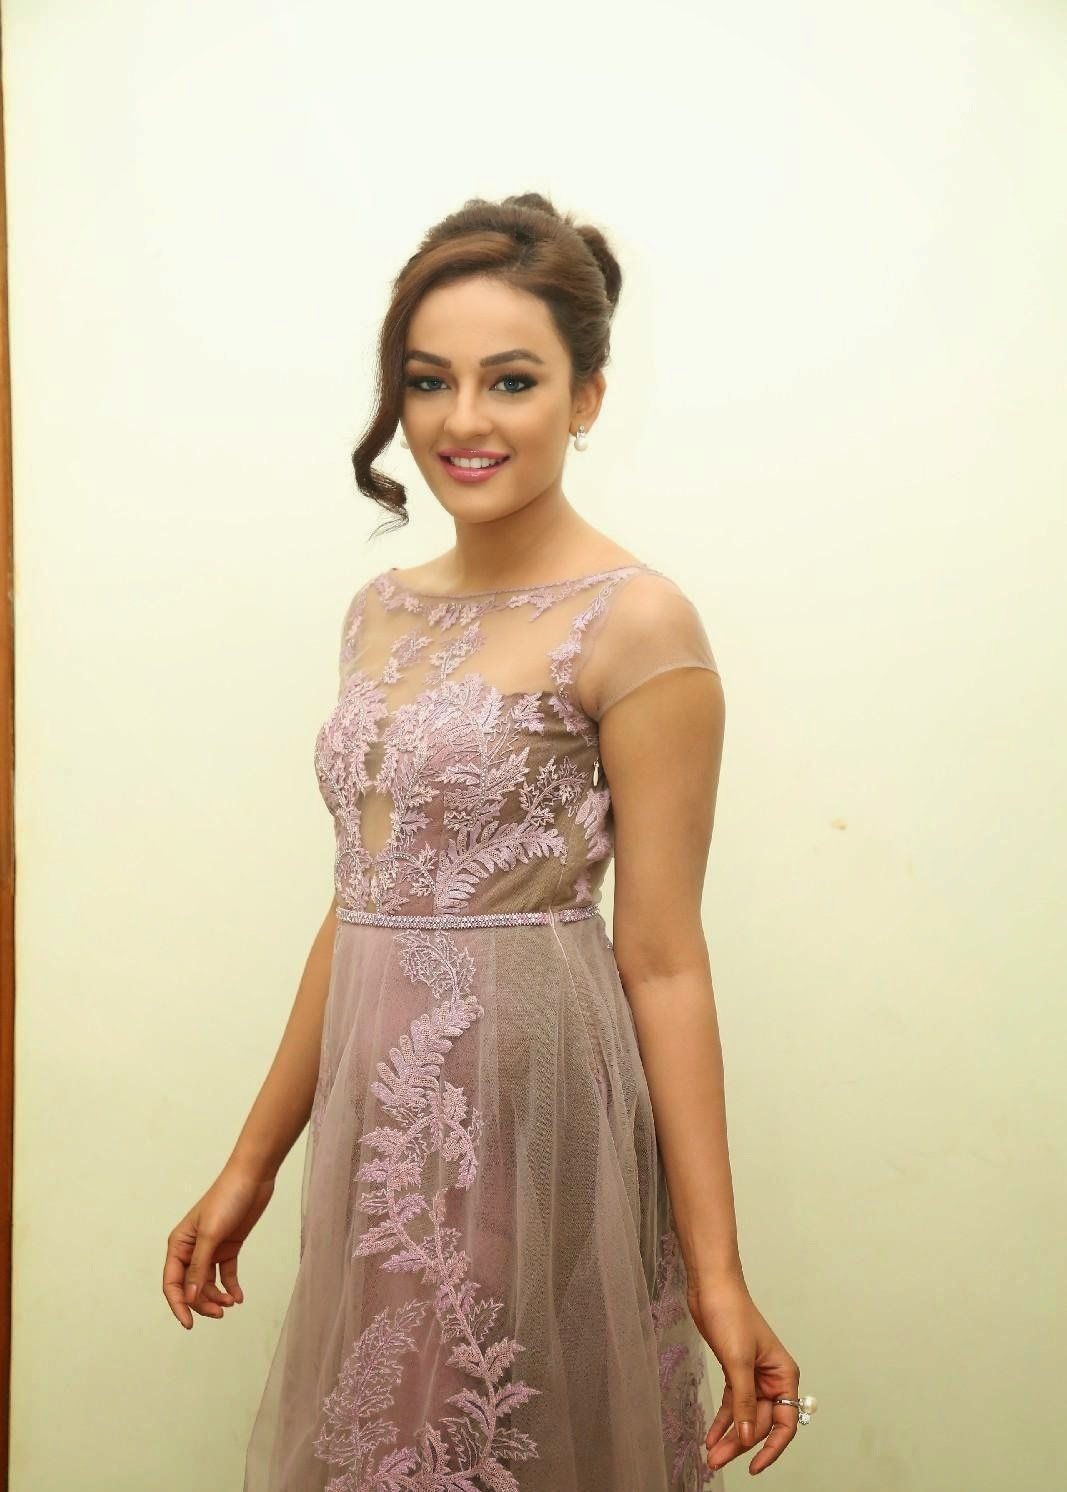 High Quality Bollywood Celebrity Pictures Seerat Kapoor -5523